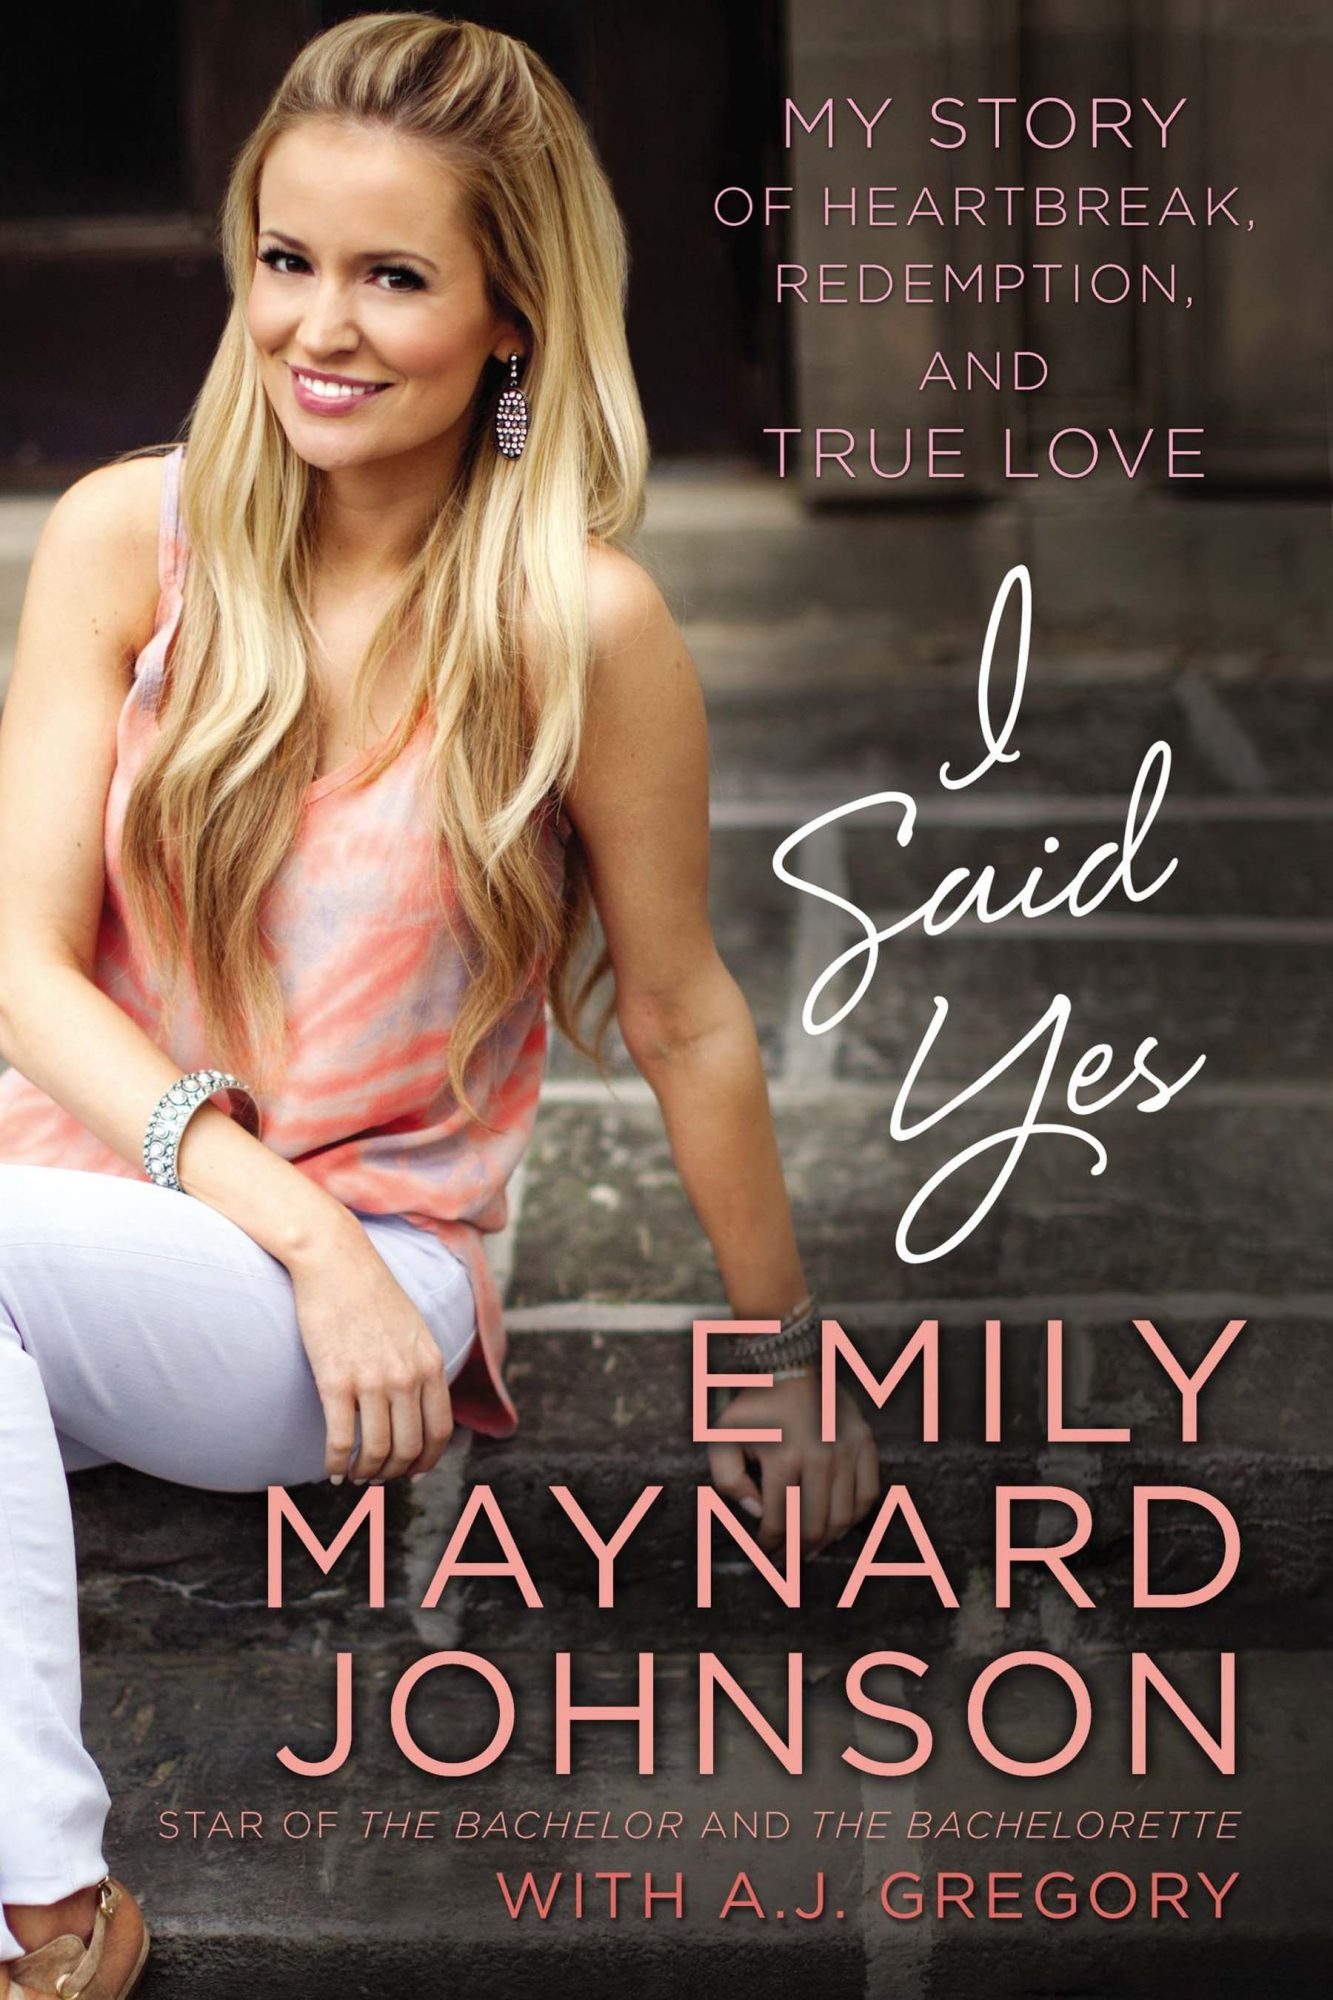 I Said Yes: My Story of Heartbreak, Redemption, and True Love by Emily Maynard Johnson